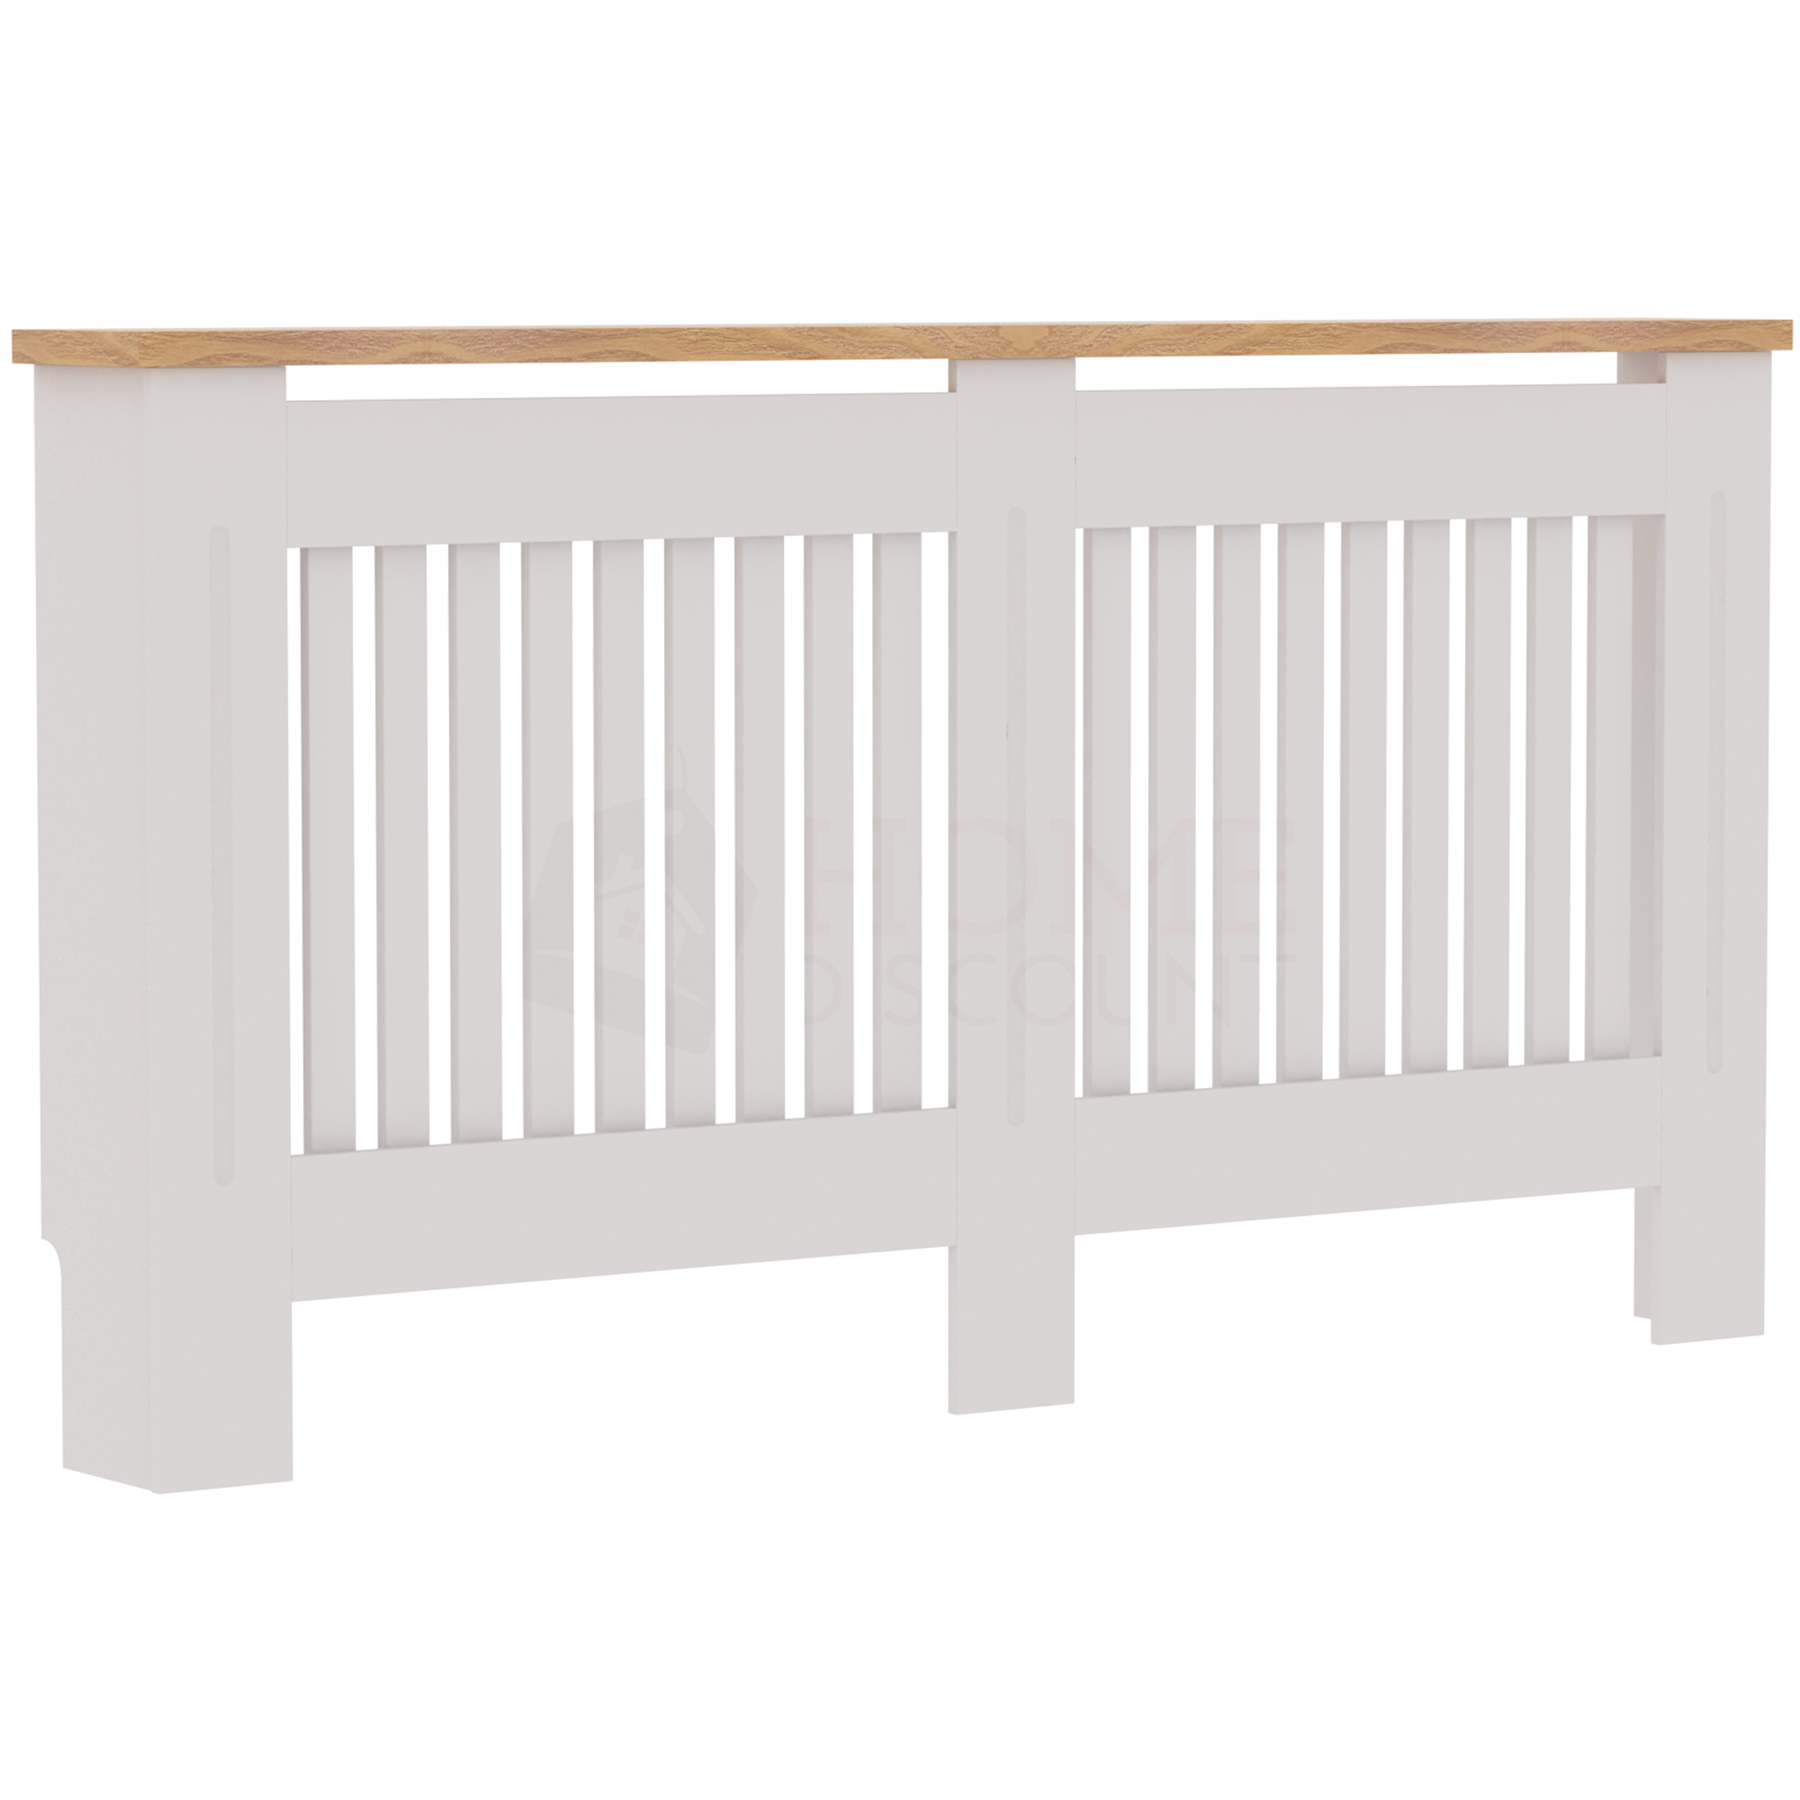 Radiateur-Housse-Blanc-inachevee-MODERNE-BOIS-TRADITIONNELLE-Grill-cabinet-furniture miniature 25